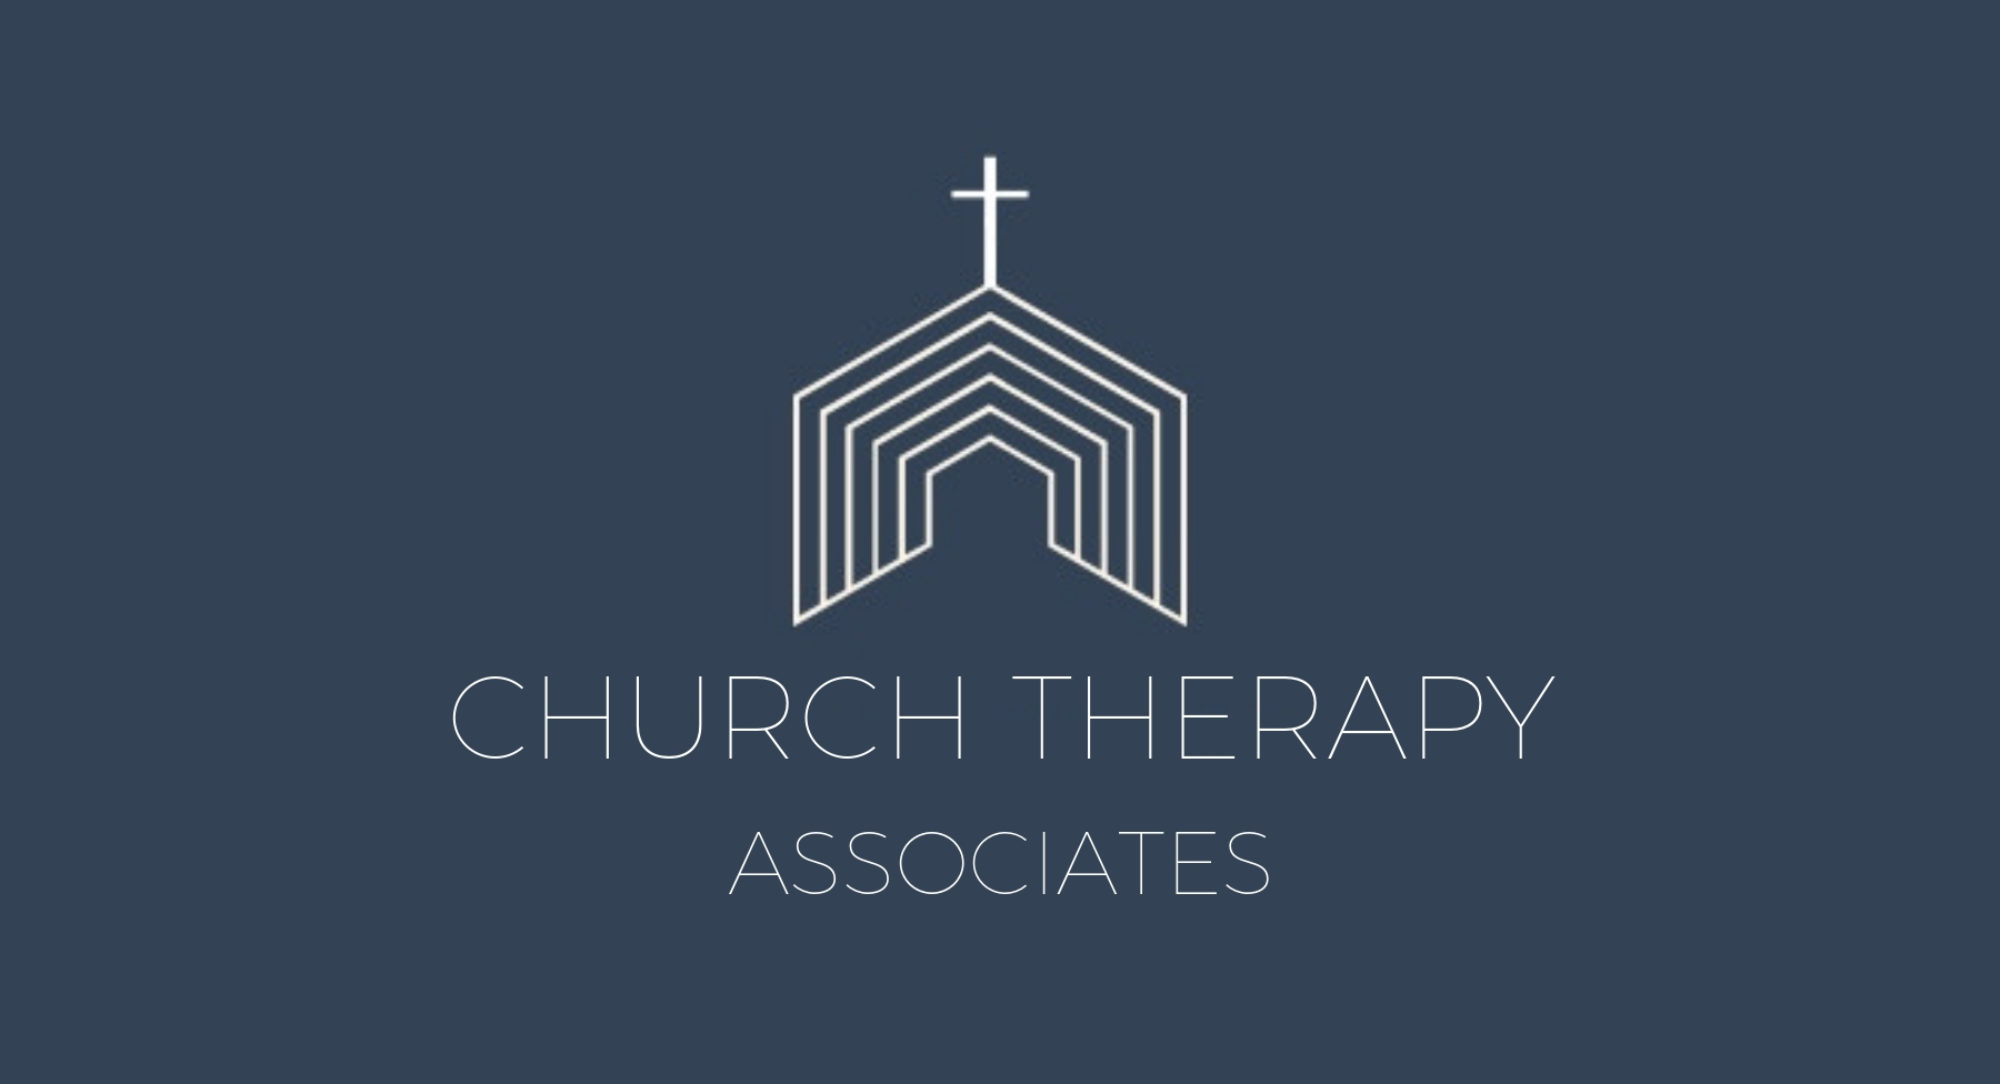 Counseling Recovery Worksheets Church Therapy Associates